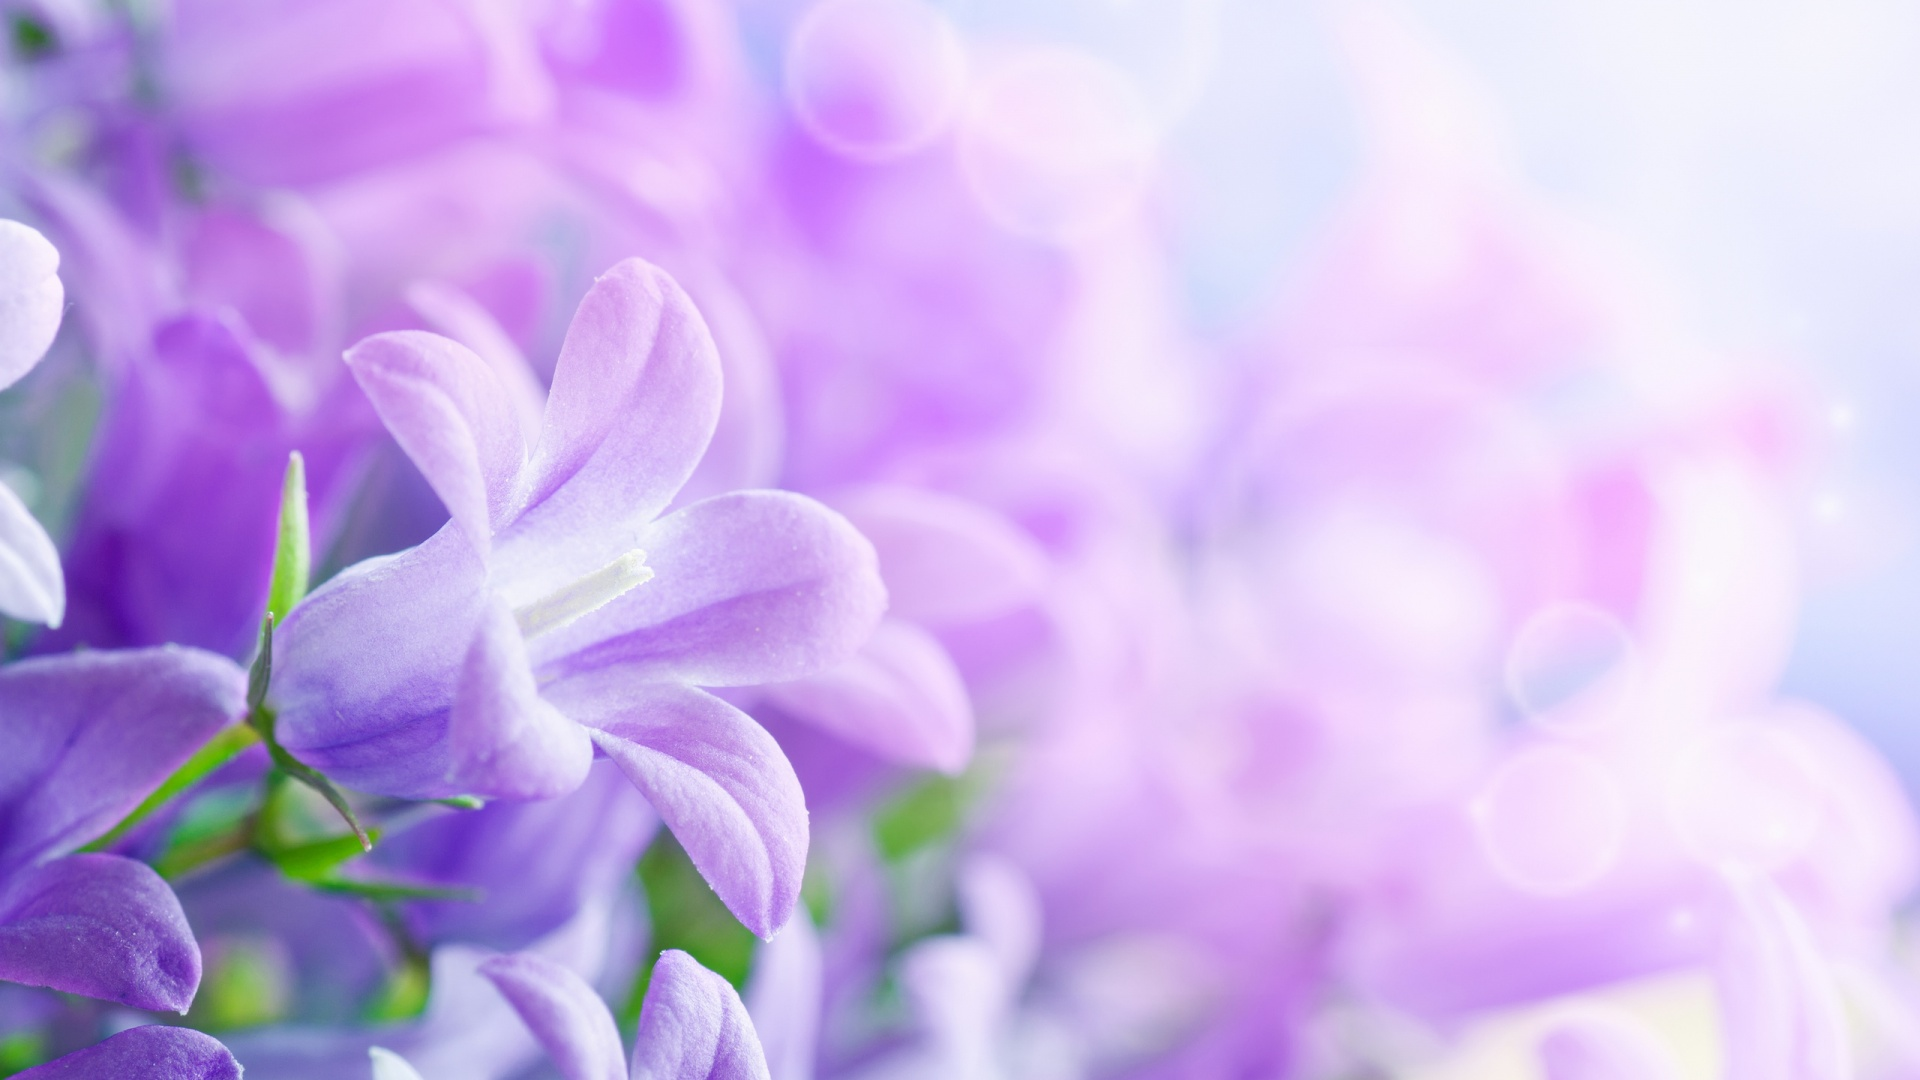 Beautiful Flowers Pictures 26794 1920x1080 px